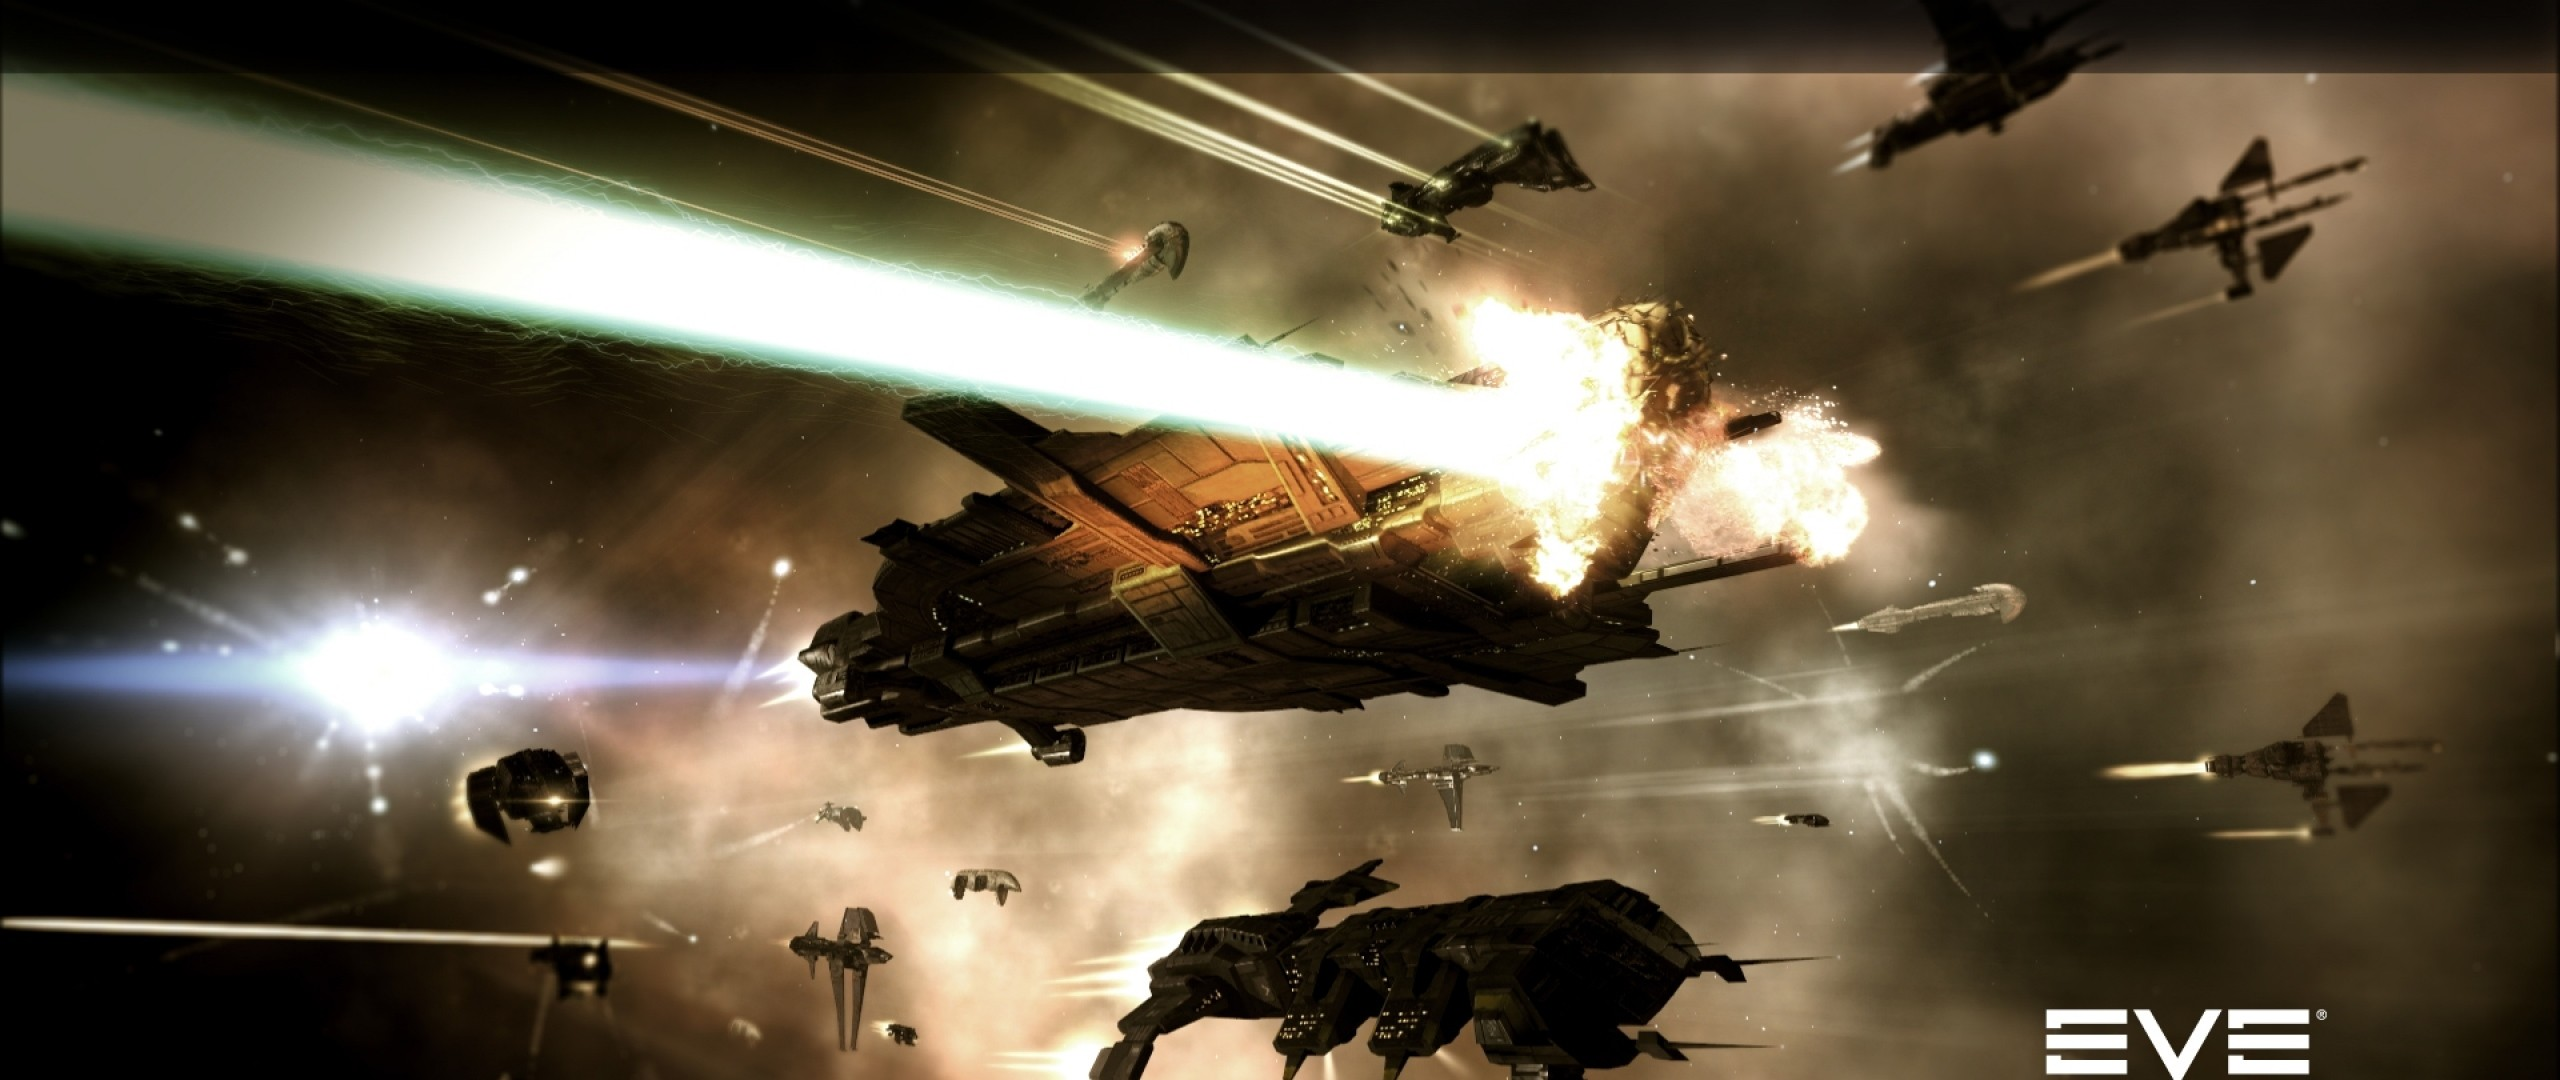 Preview wallpaper eve online, space, spaceships, light 2560×1080